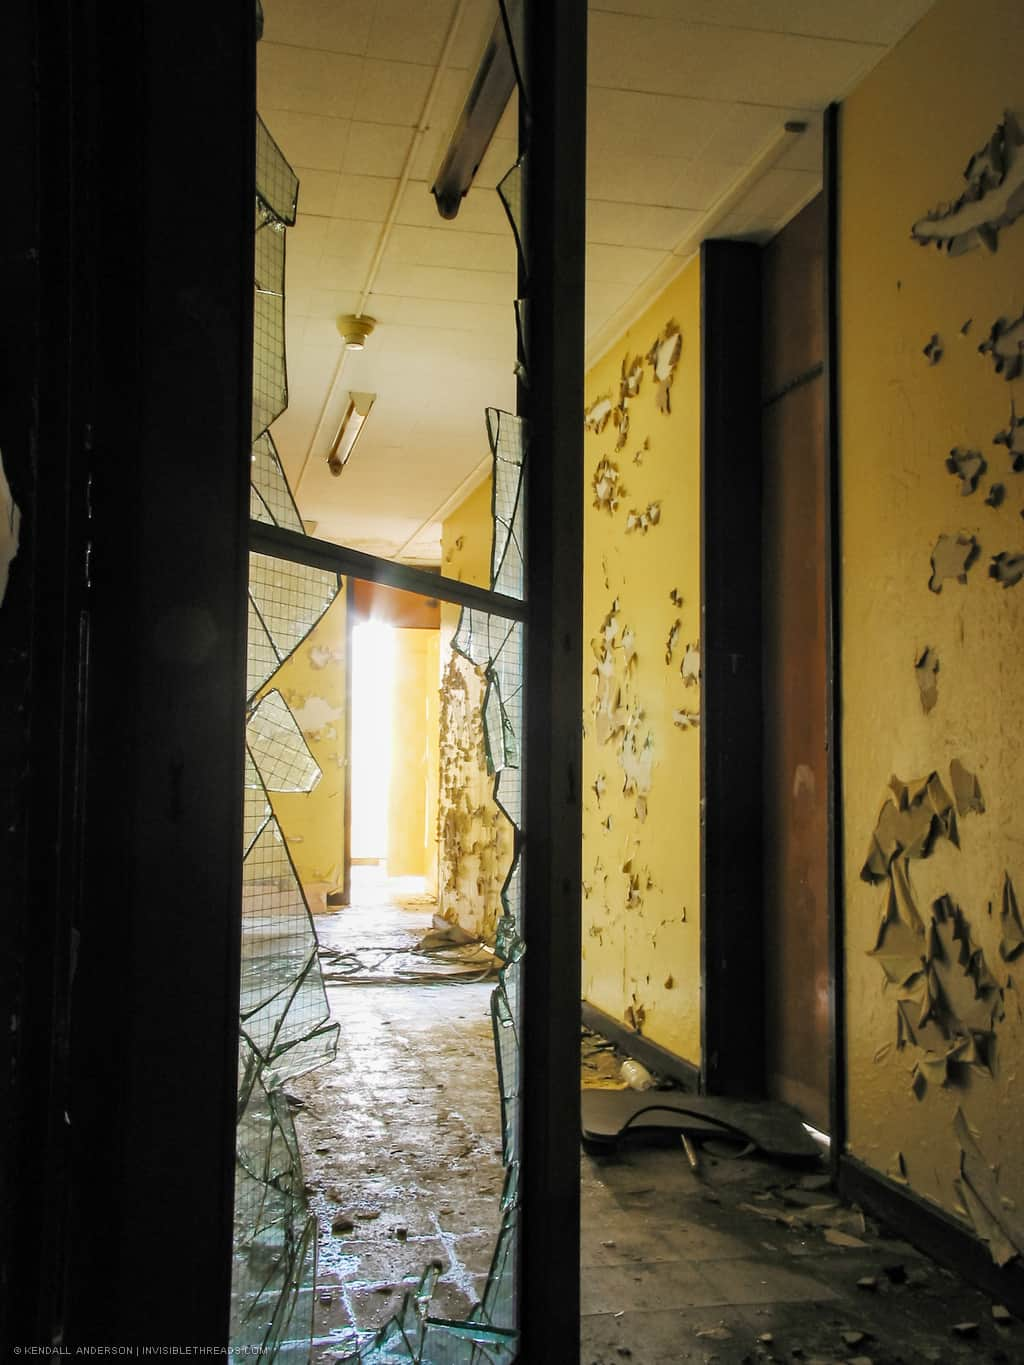 The interior of a school hallway is seen through a broken glass window in a door frame. The yellow walls are covered in peeling paint.